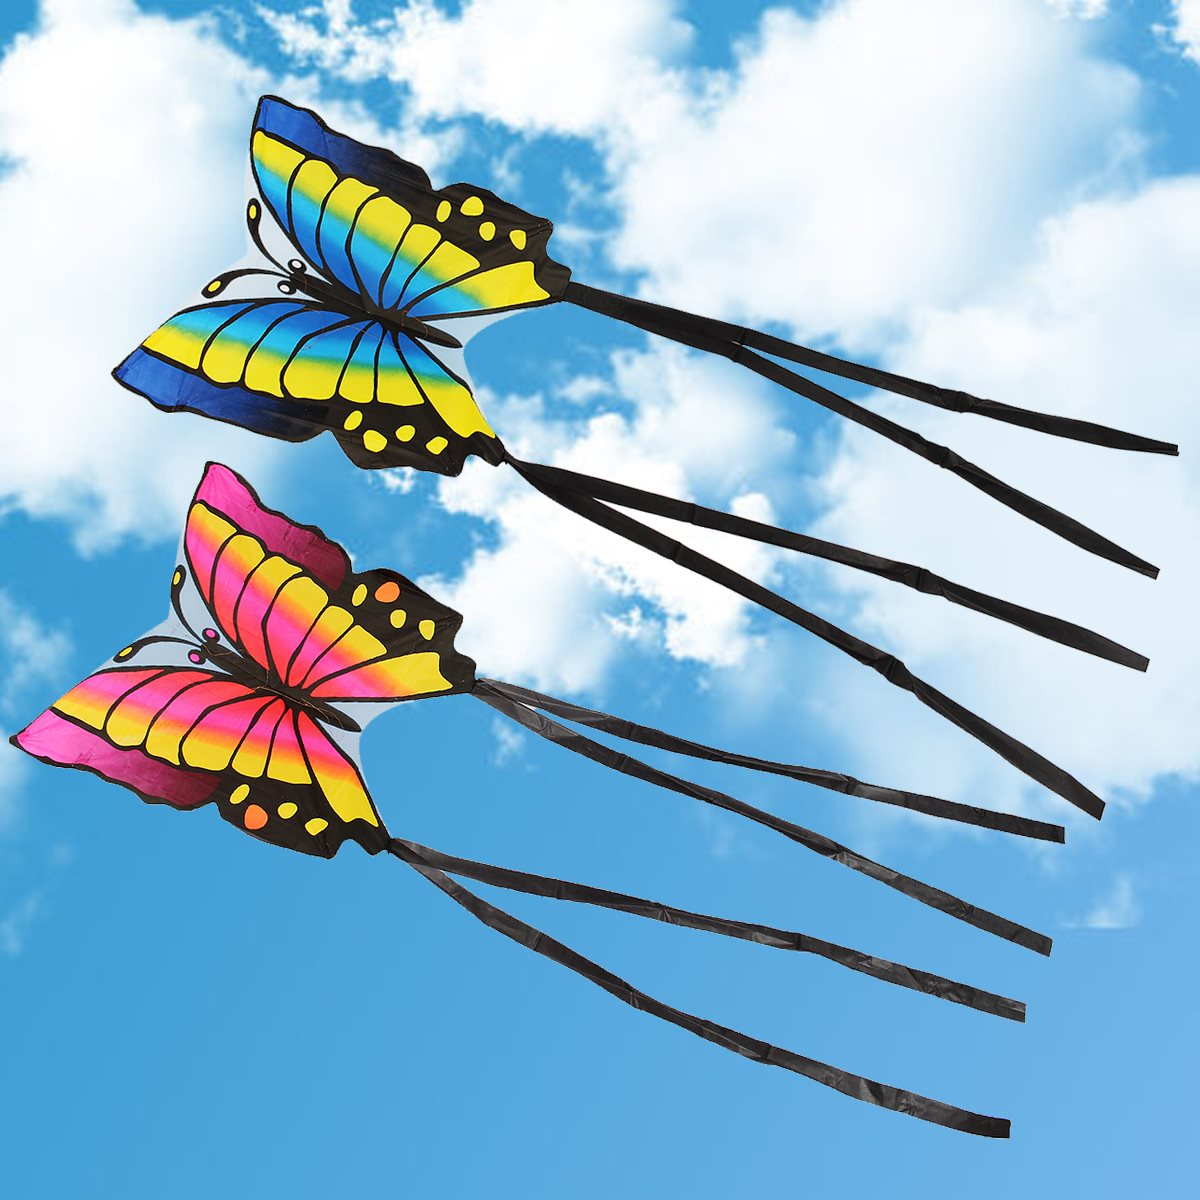 Childrens Butterfly Kite Easy to Fly Single Line Kite Tail 1.5M Outdoor Funny Sports Toy Gift Funny Sport Outdoor Playing Toys